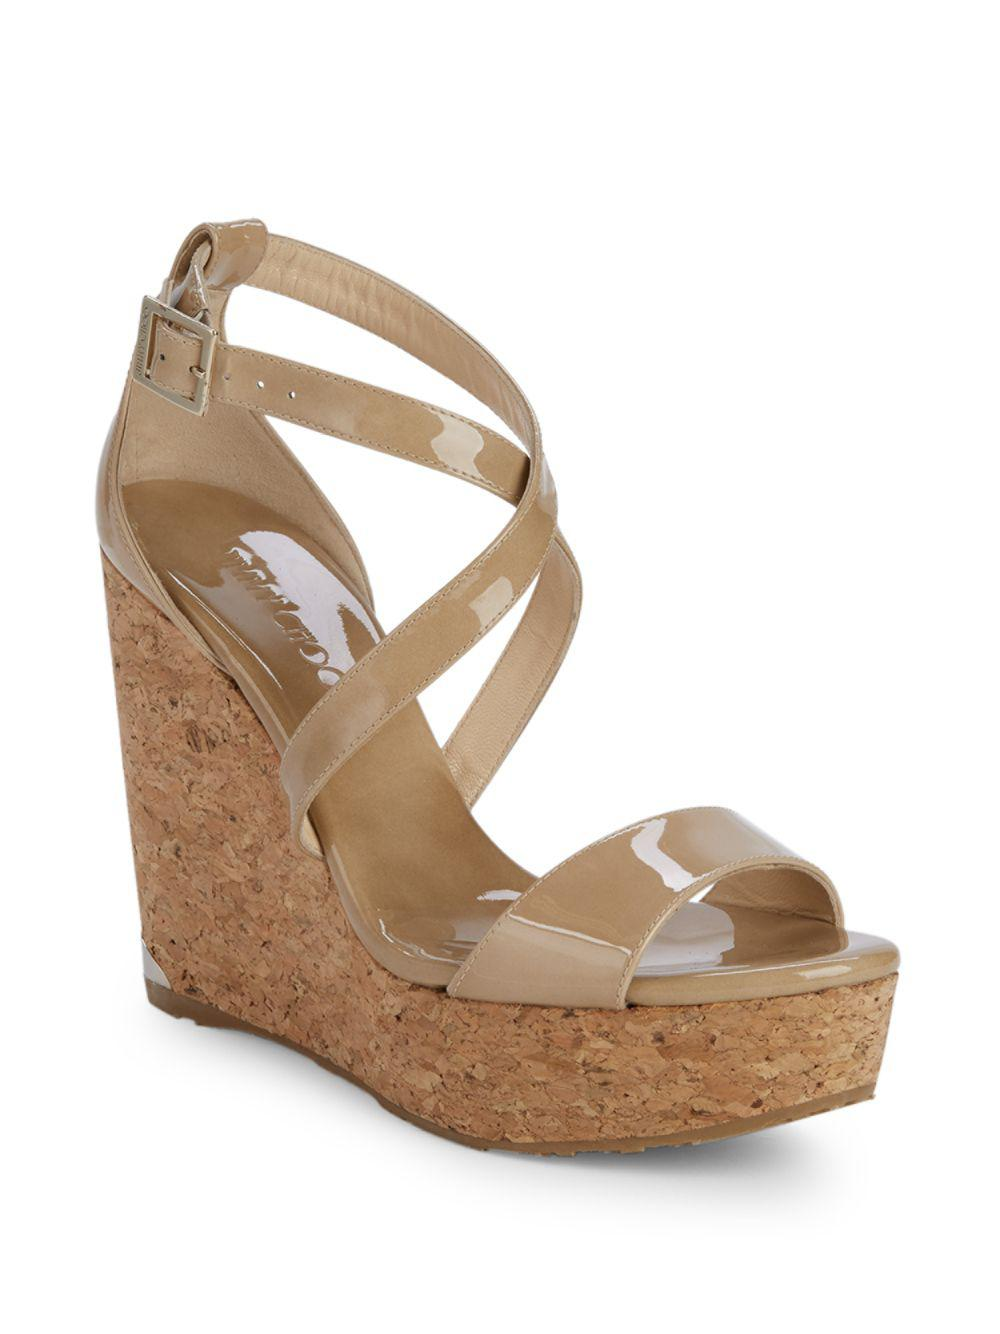 a98f9954be Lyst - Jimmy Choo Portia Patent Leather Wedge Sandals in Natural